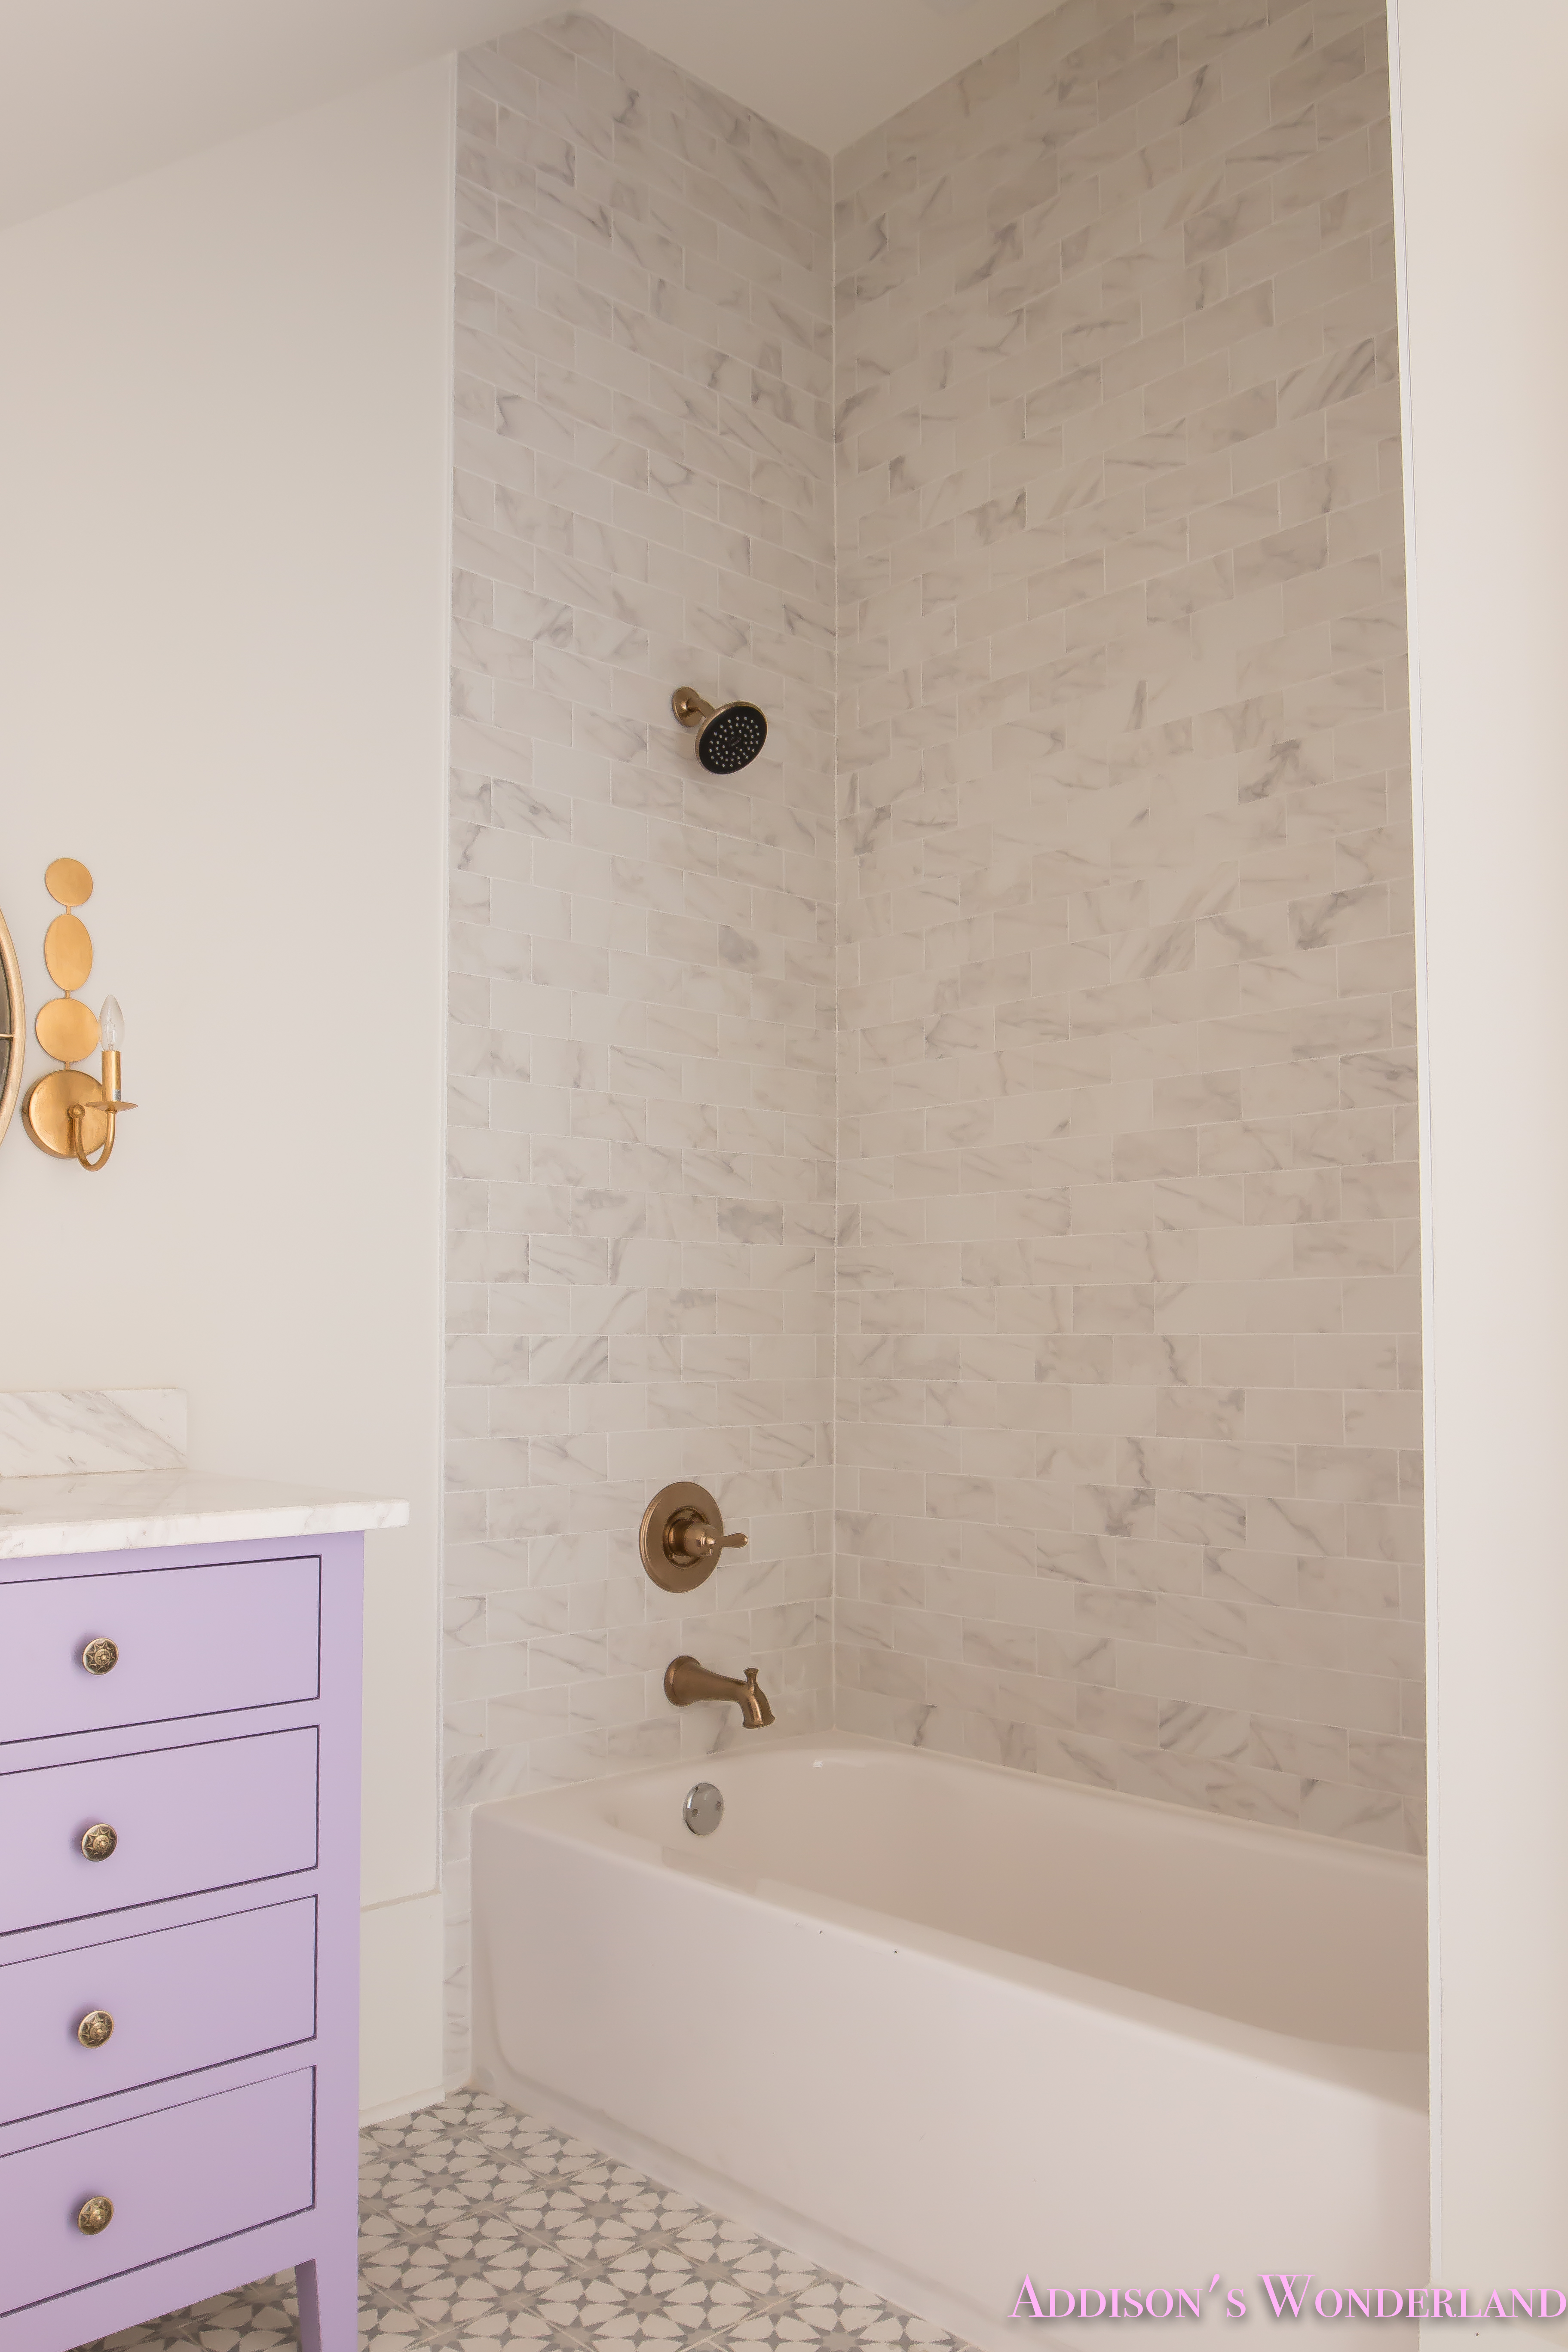 Alabaster walls girls bathroom white porcelain marble subway tile alabaster walls girls bathroom white porcelain marble subway tile cement tile patterned antique brass faucet purple vanity cabinet 5 of 6 dailygadgetfo Gallery